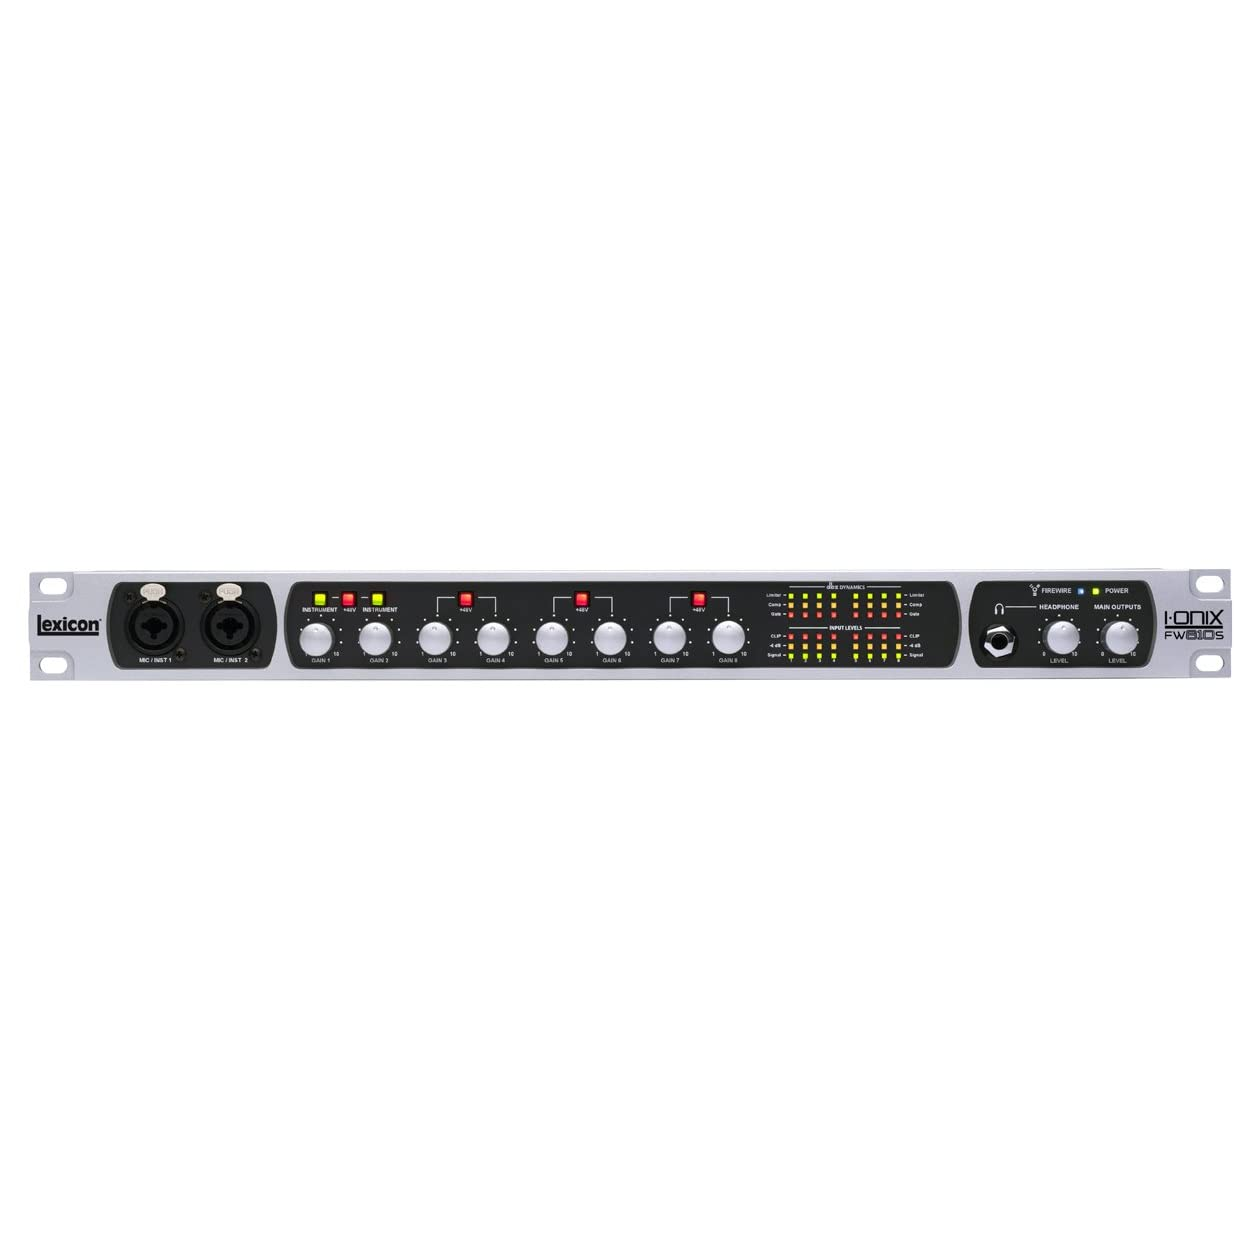 LEXICON I•ONIX FW810S FIREWIRE AUDIO INTERFACE